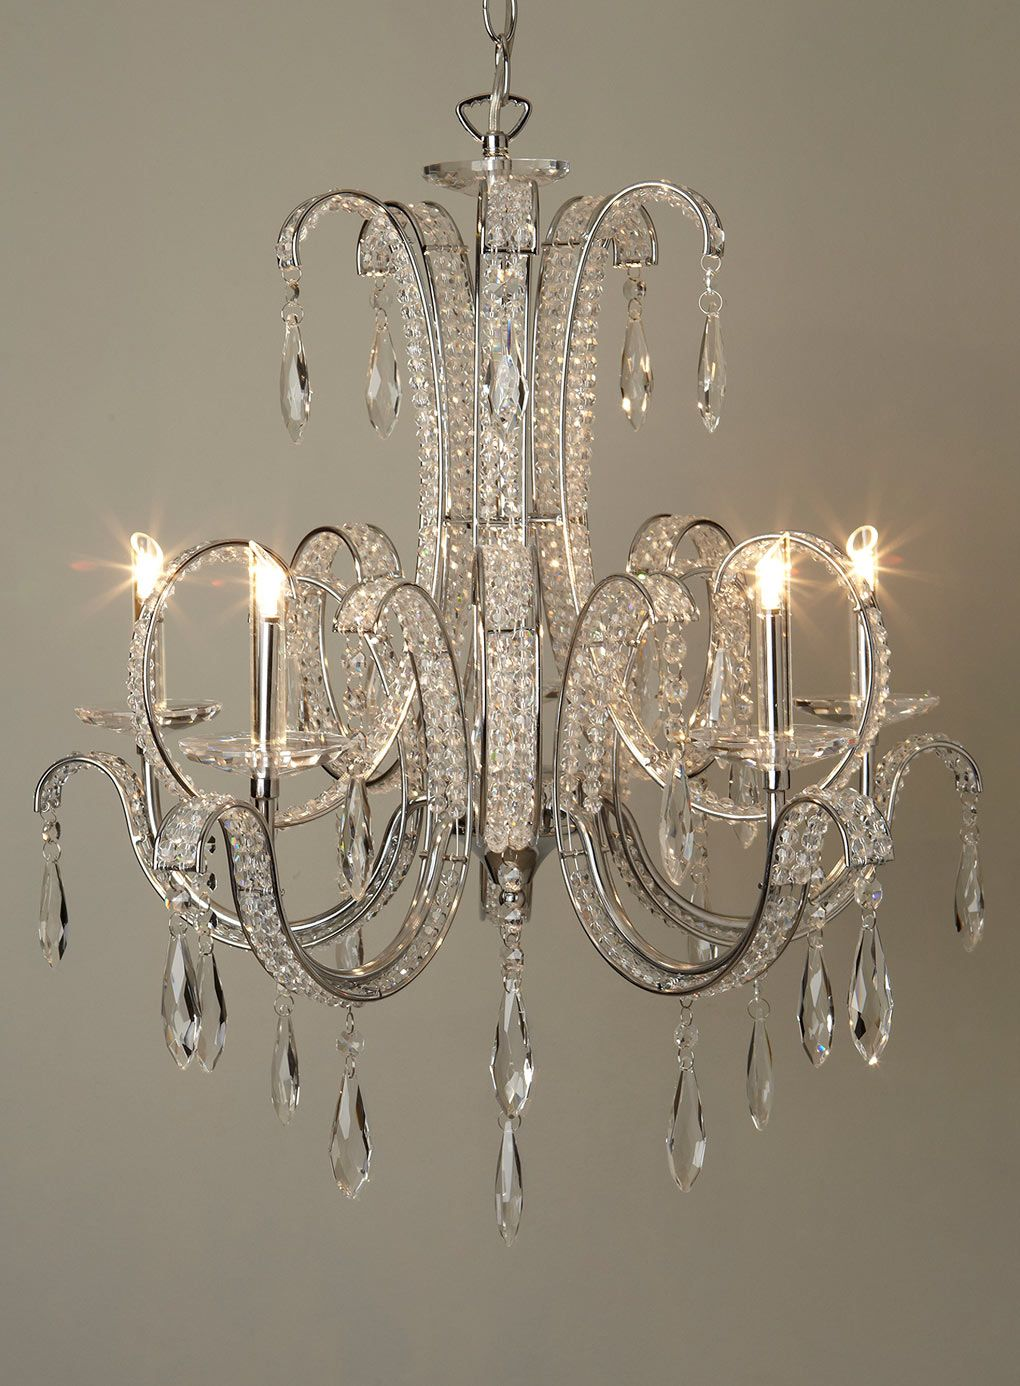 Bathroom Chandeliers Bhs clear ambrin 5 light chandelier - ceiling lights - home, lighting